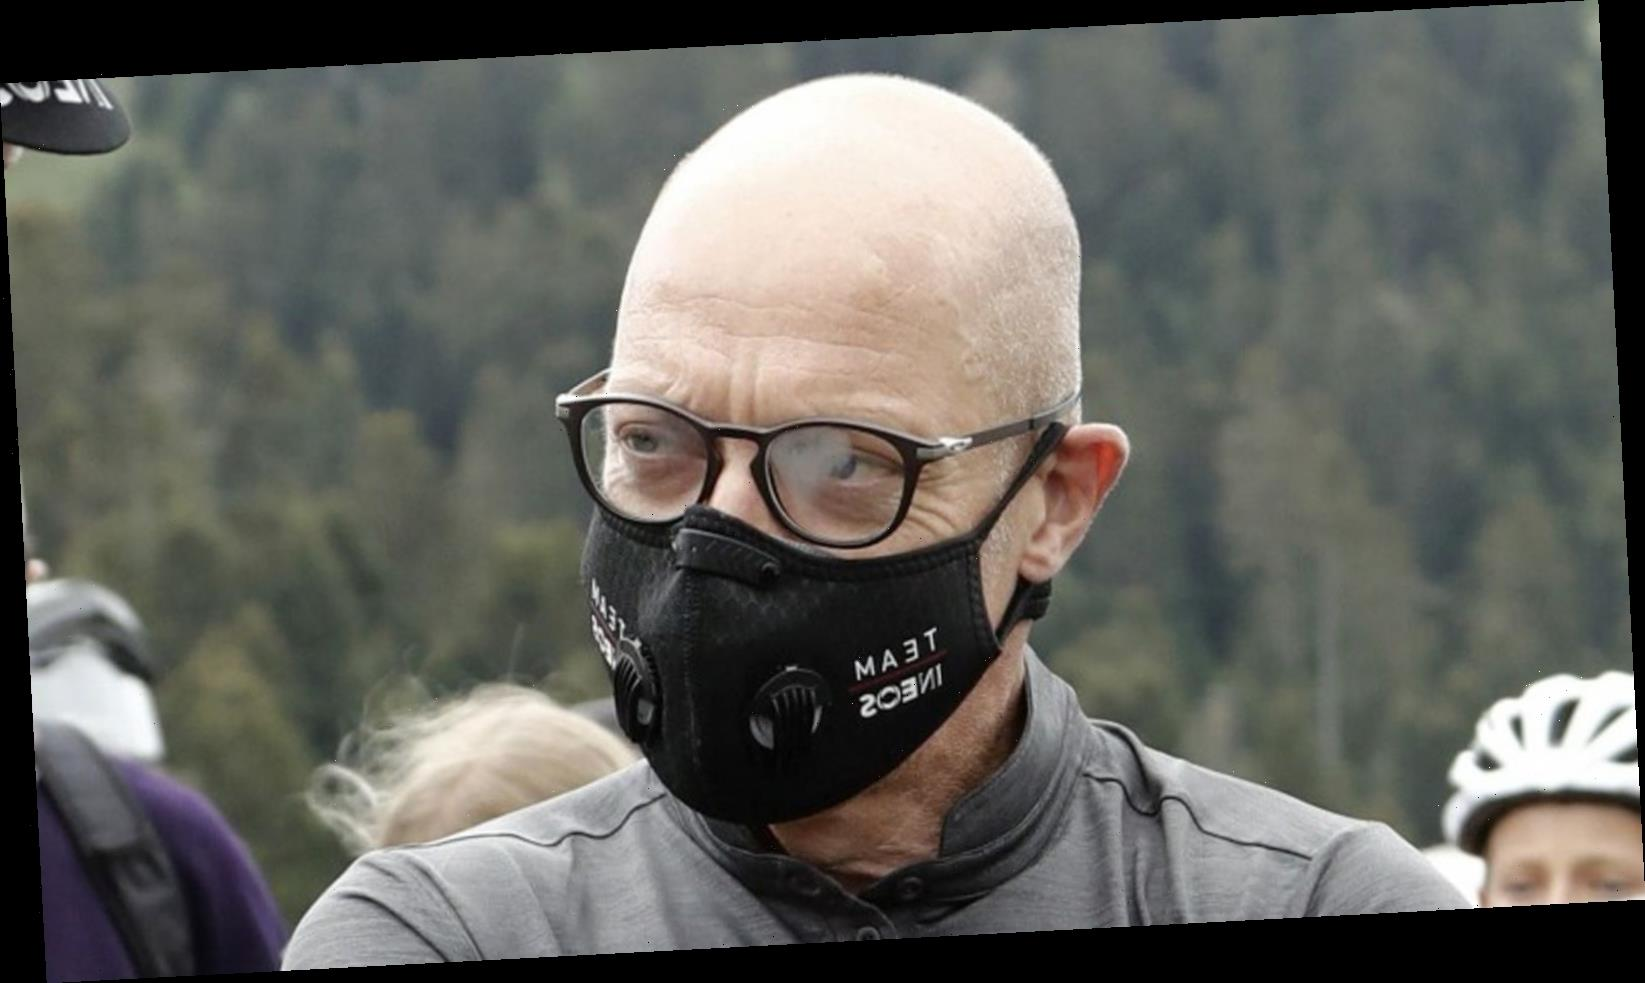 Tour de France: Sir Dave Brailsford says nobody knows if they will reach Paris